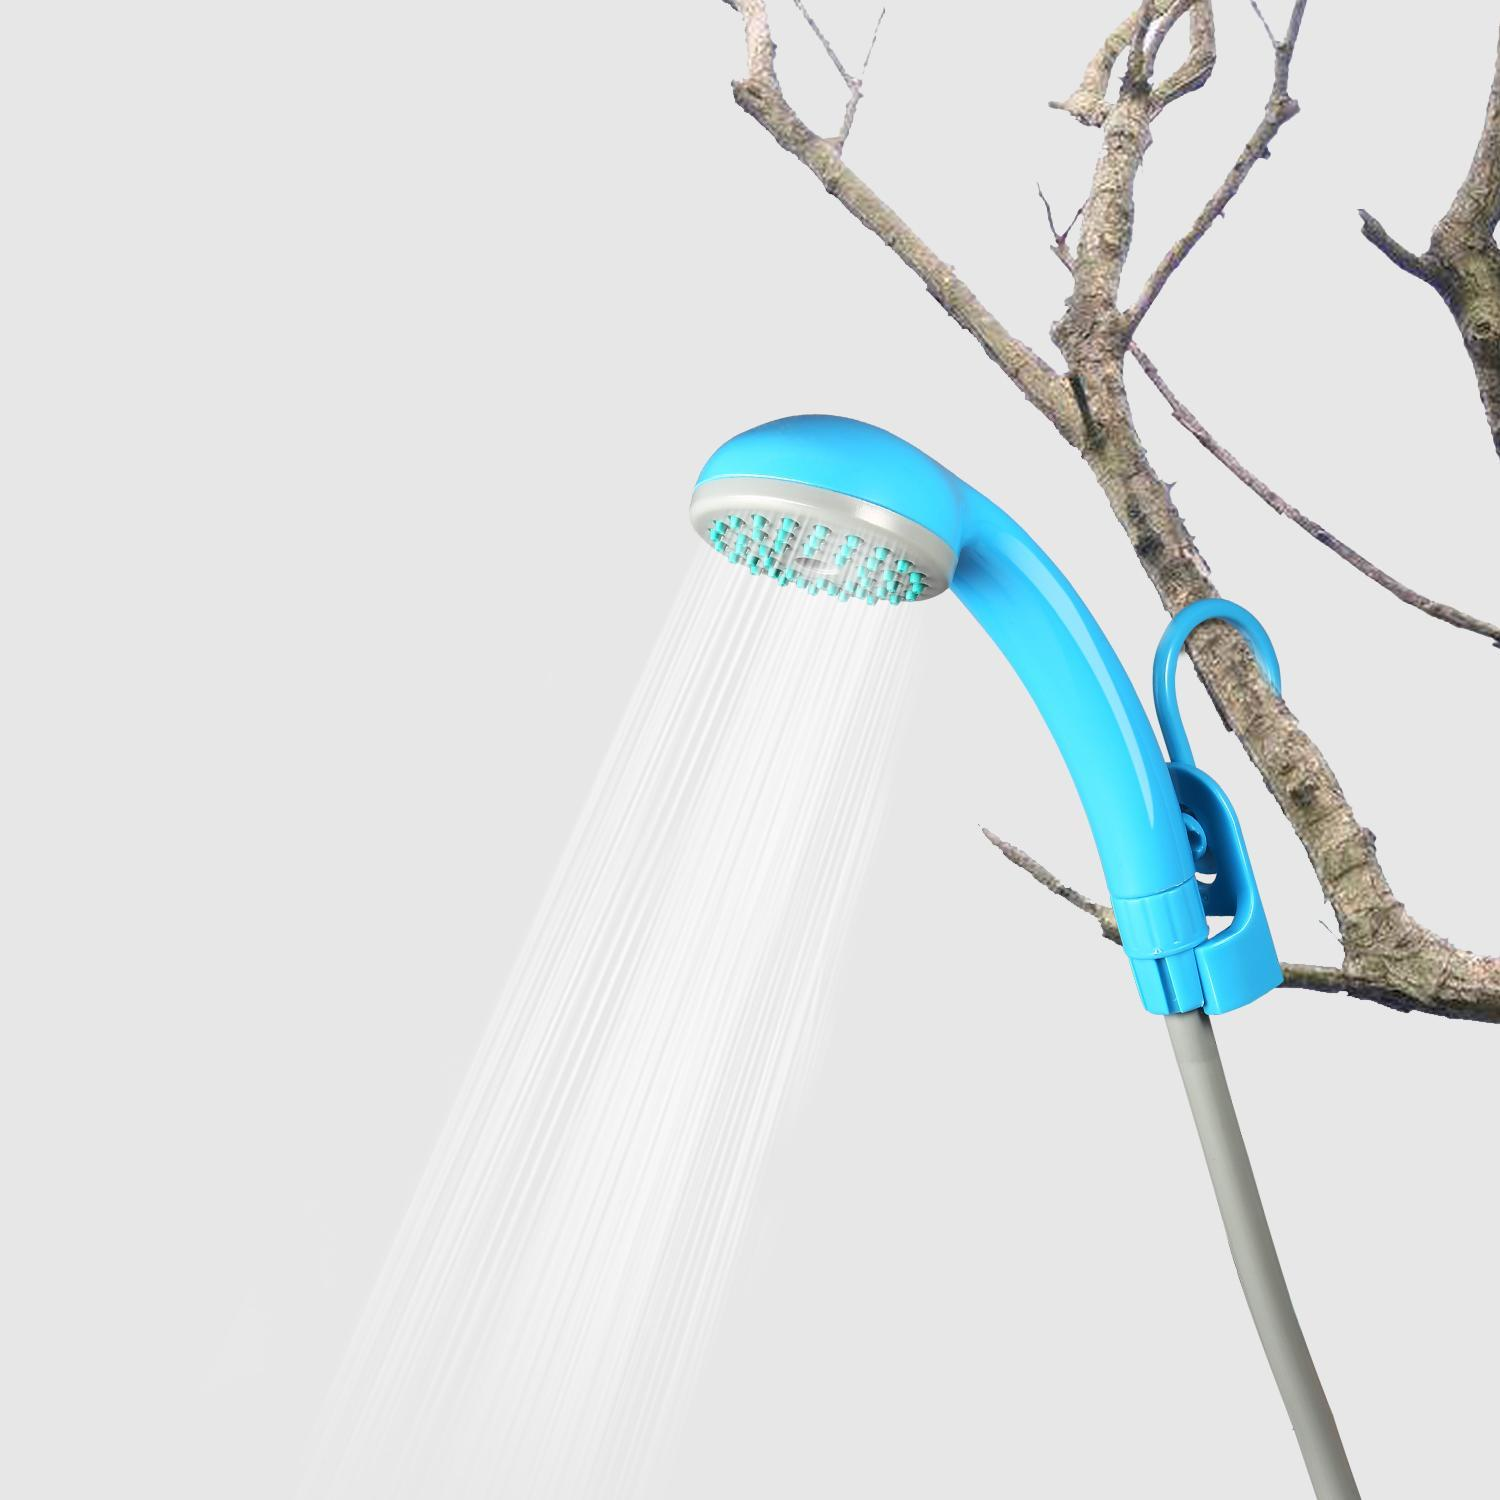 Portable Outdoor Shower Battery Powered Rechargeable Handheld Camping Showerhead CYBST